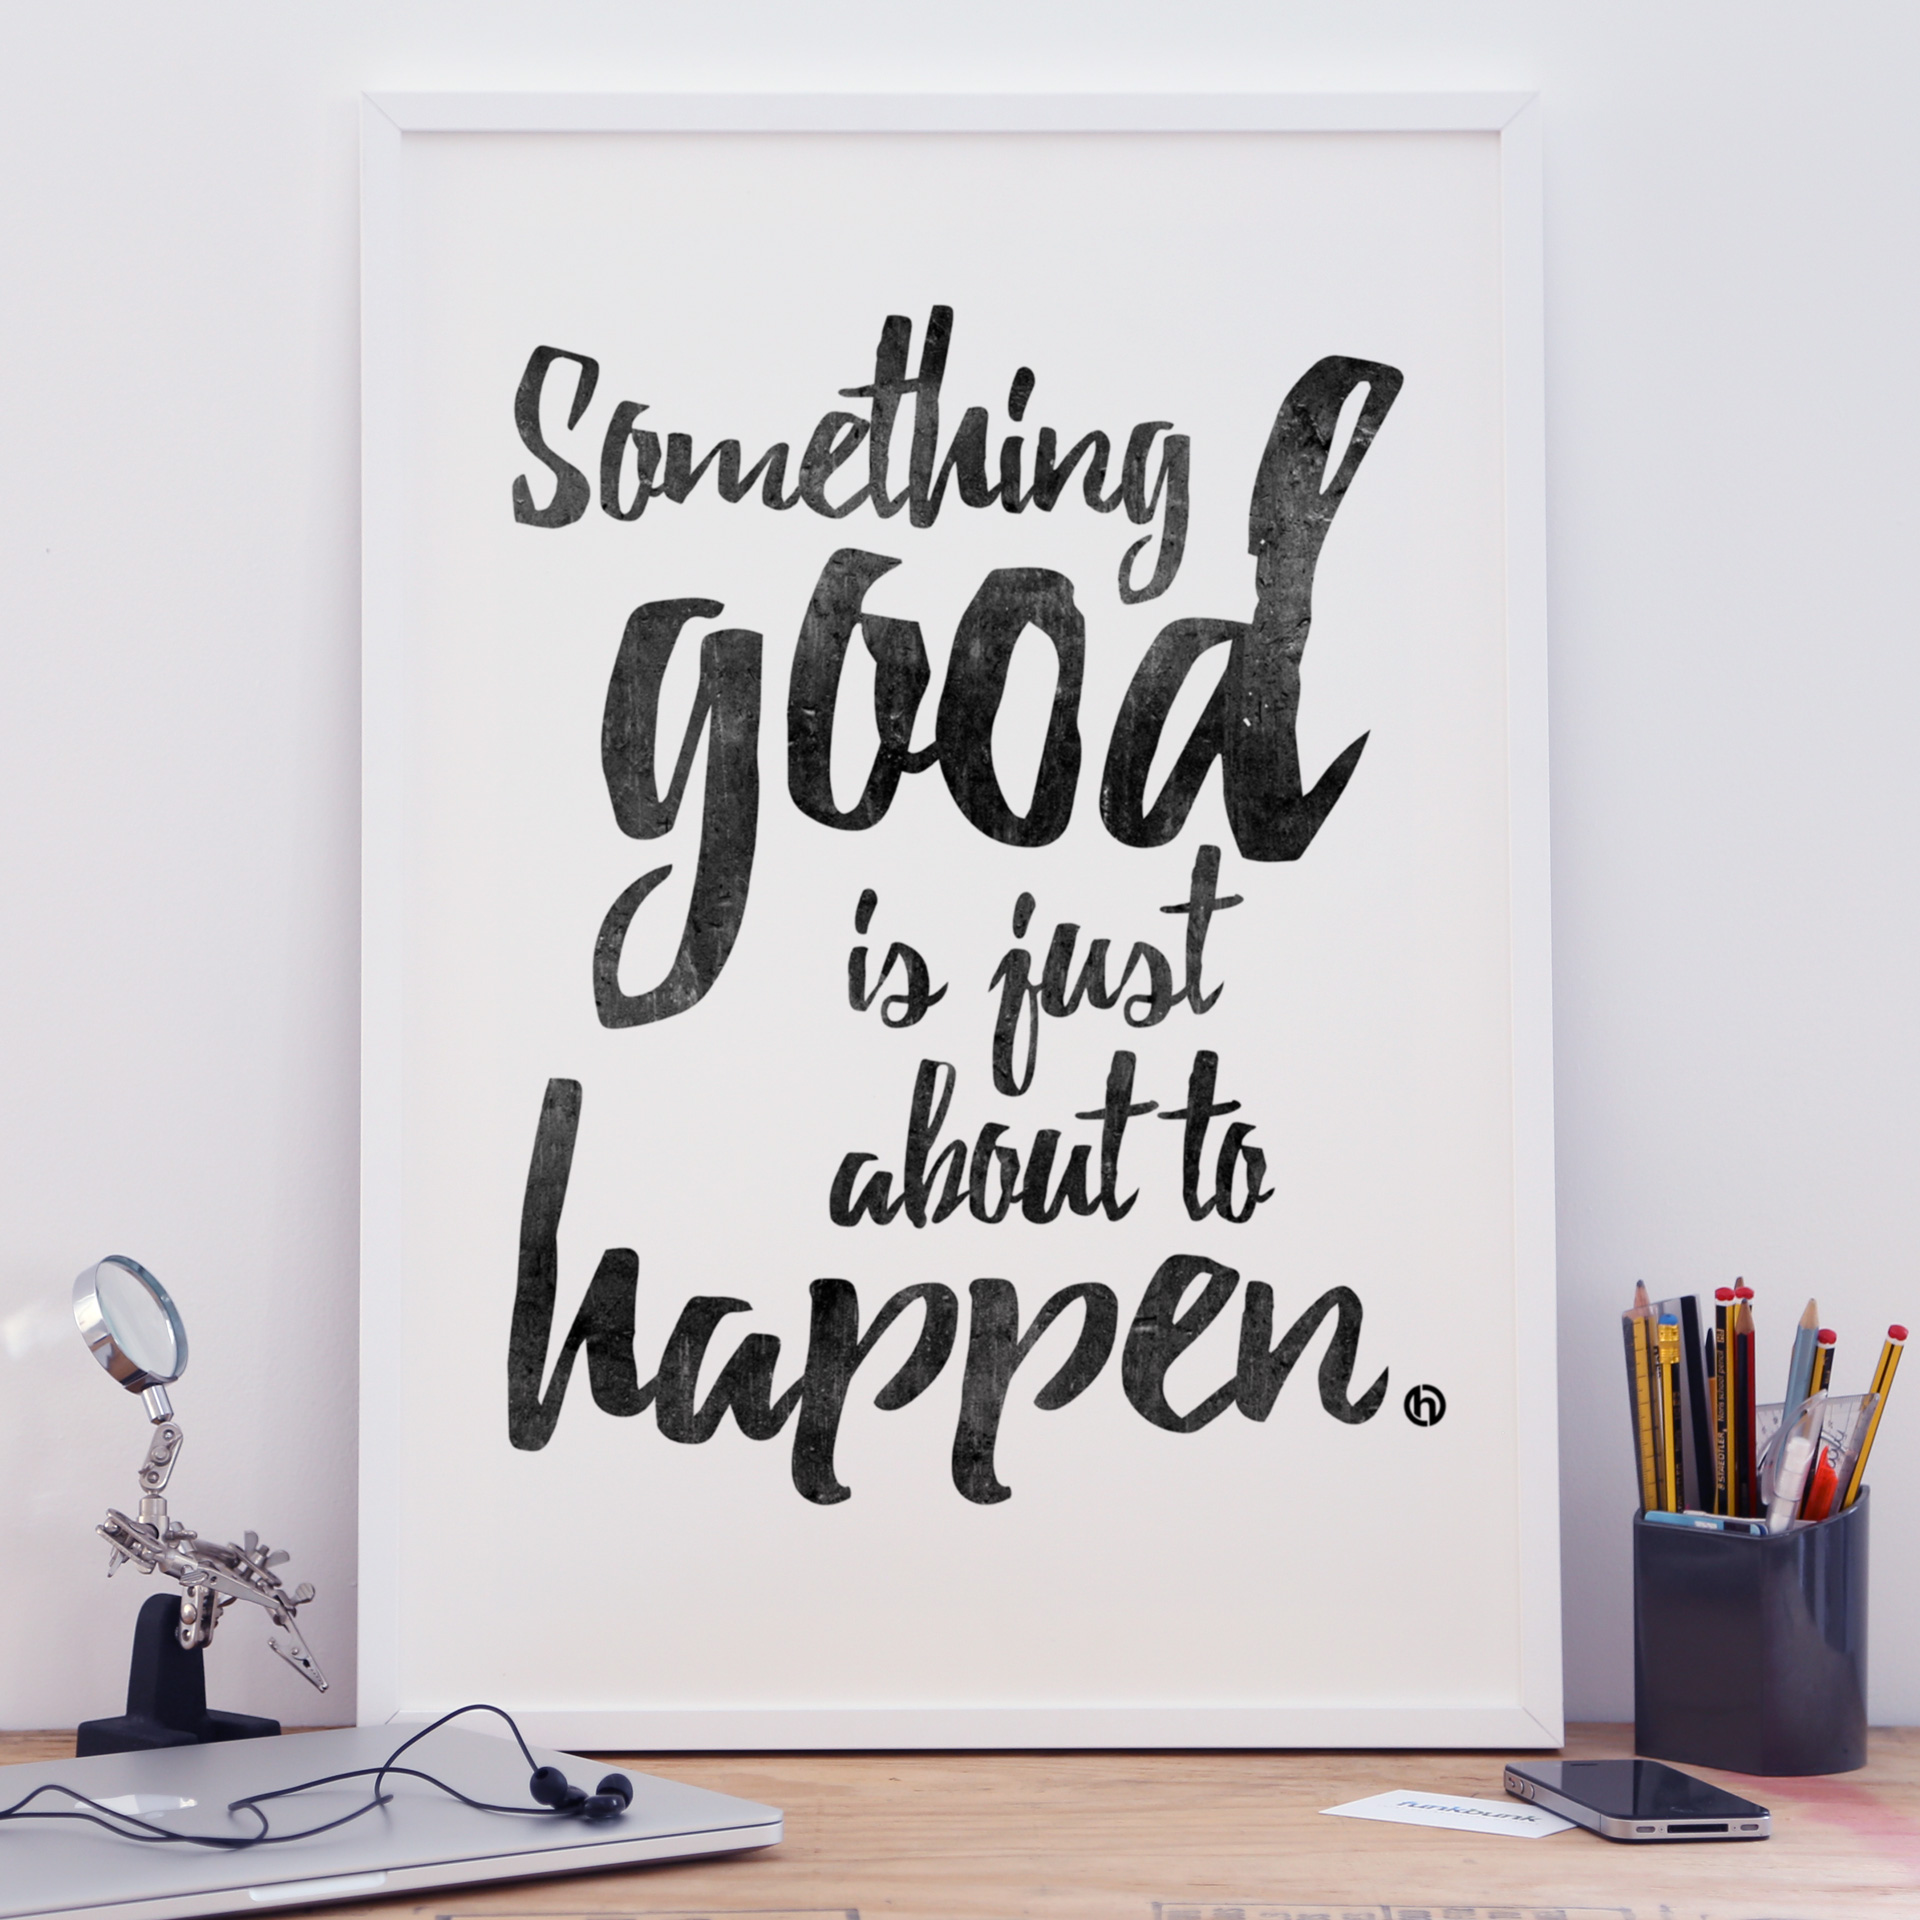 Motivational A2 poster prints - Something Good